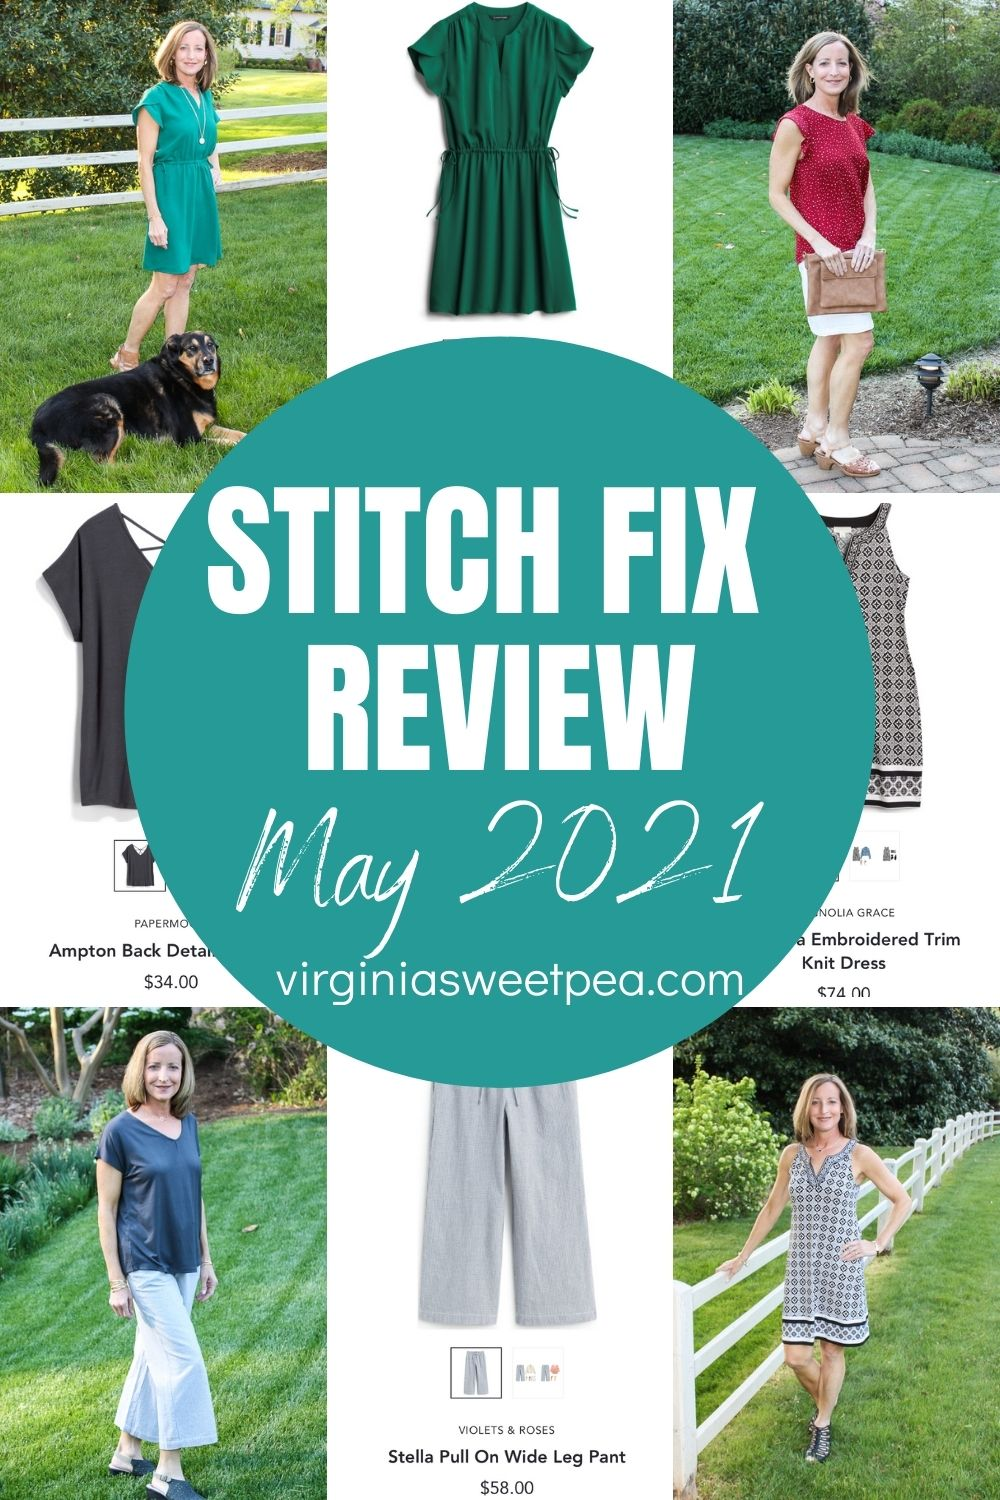 May is here and this month's Stitch Fix box was filled with fashions to enjoy throughout spring and into summer.  See what my stylist picked for me to try for May and get Stitch Fix inspiration for your next box.  #stitchfix #stitchfixreview via @spaula